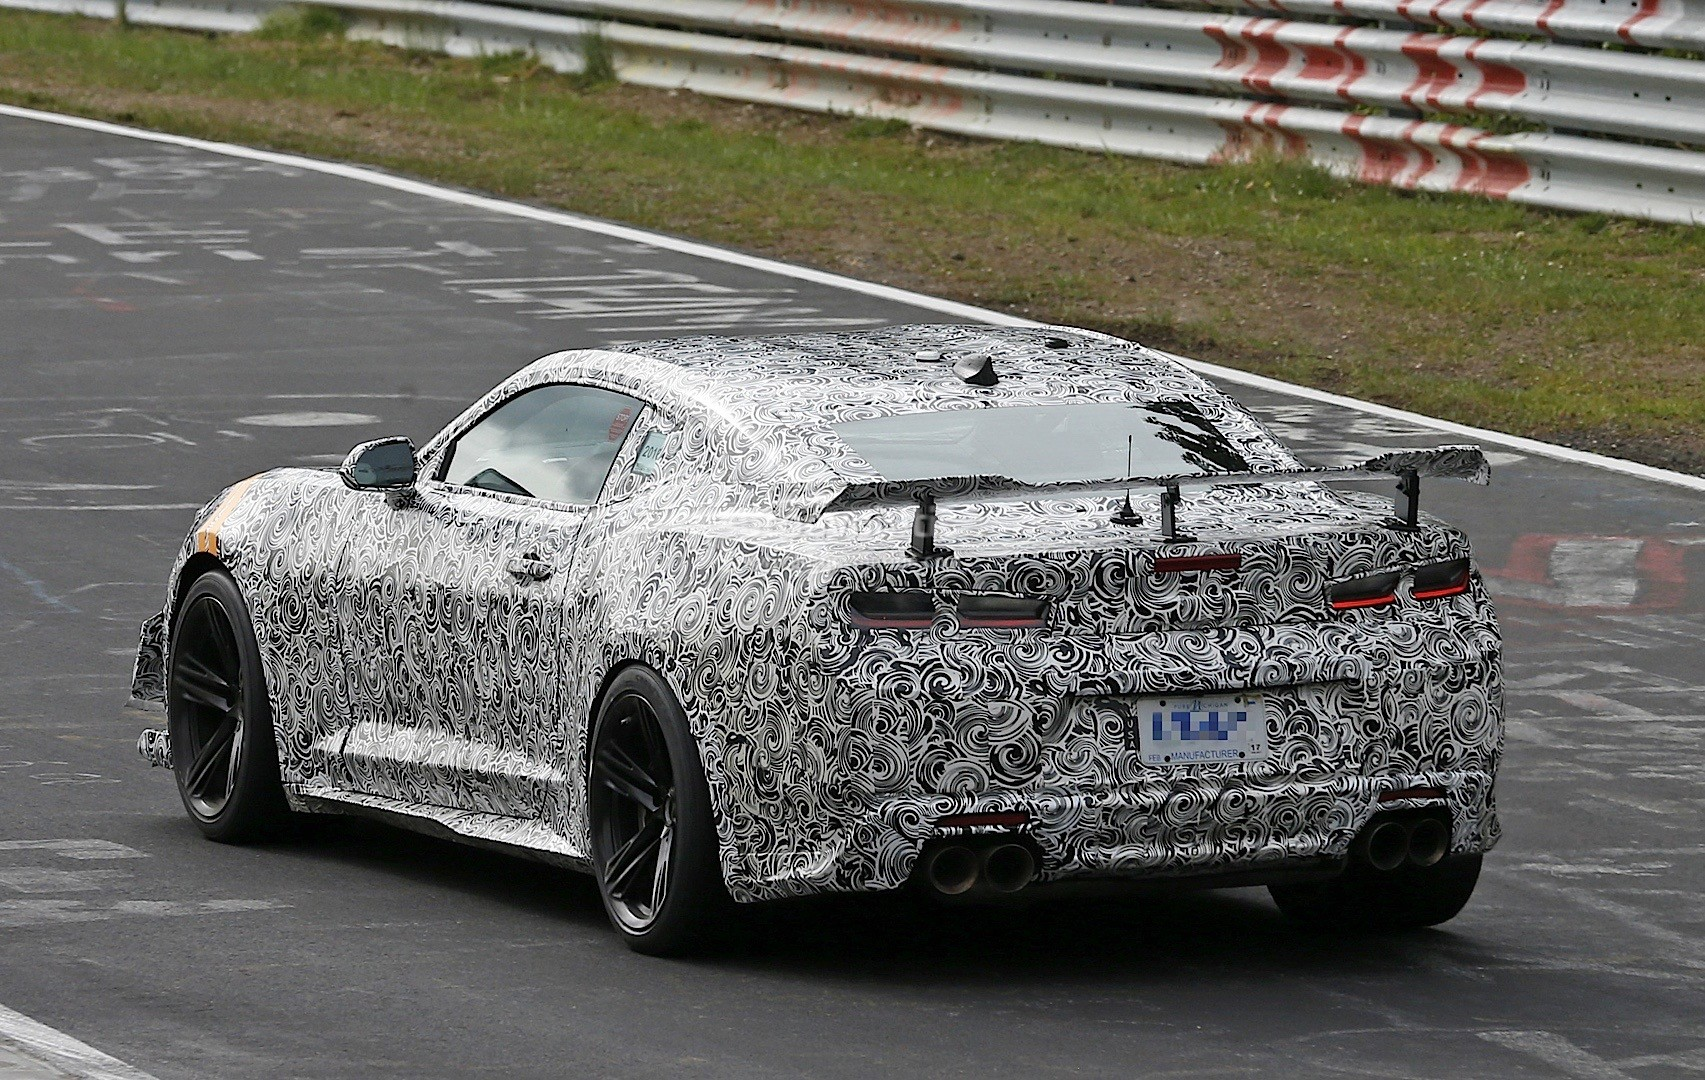 2018 Chevrolet Camaro Z 28 Spied Out For Shelby Gt350r